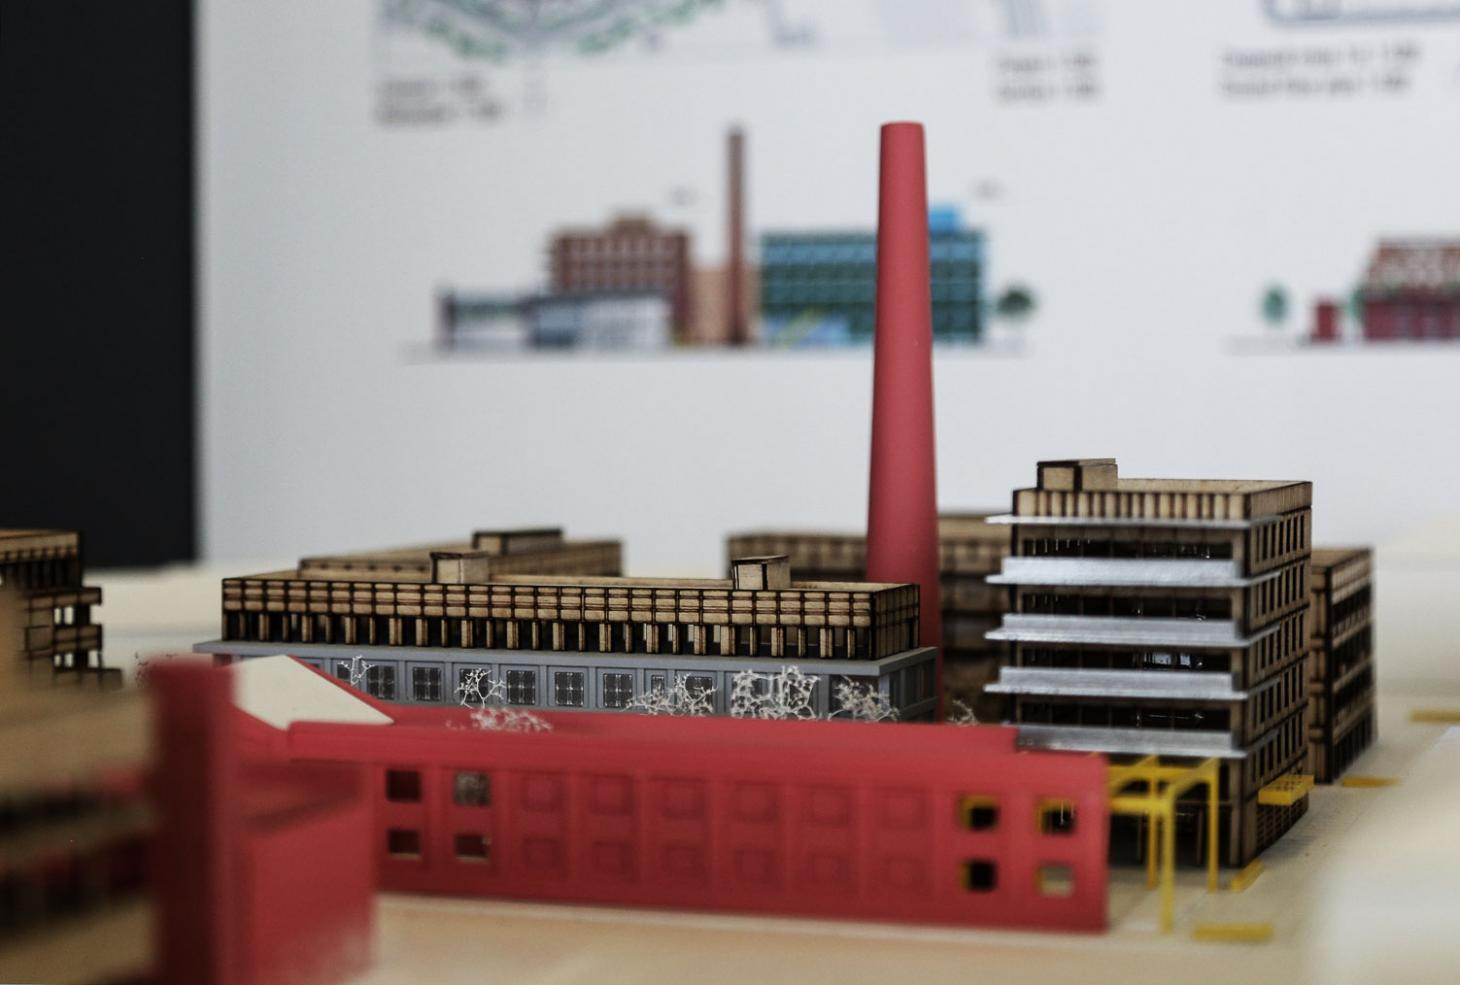 Model of reuse of an industrial site